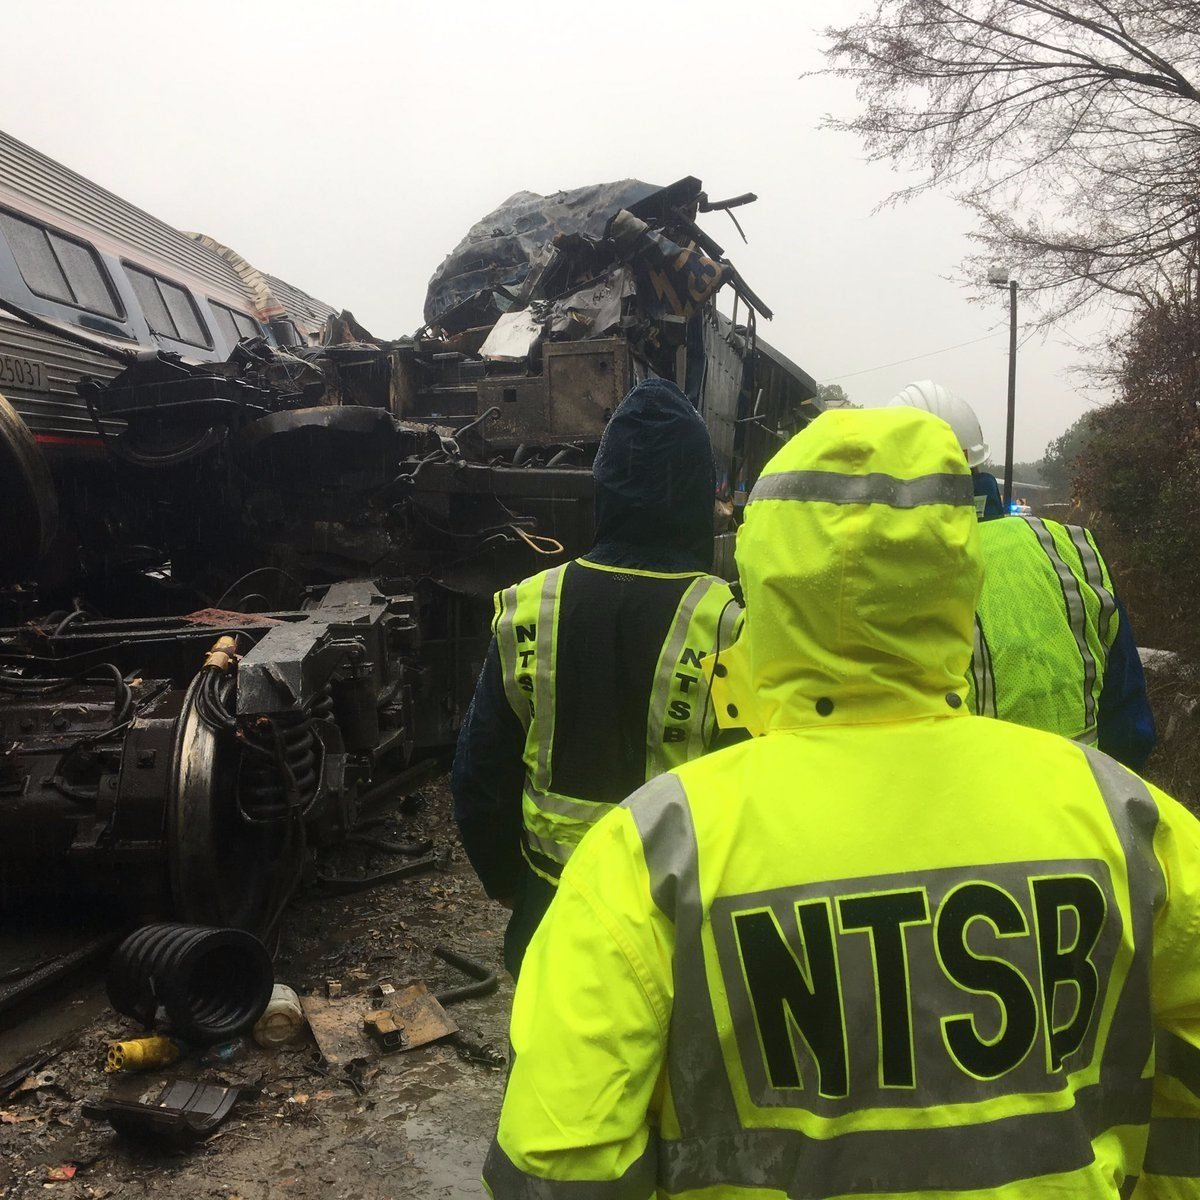 Amtrak Train 91 was traveling between New York and Miami with when it collided with a CSX freight train in Cayce South Carolina derailing the lead engine and some passenger cars Amtrak said in a statement